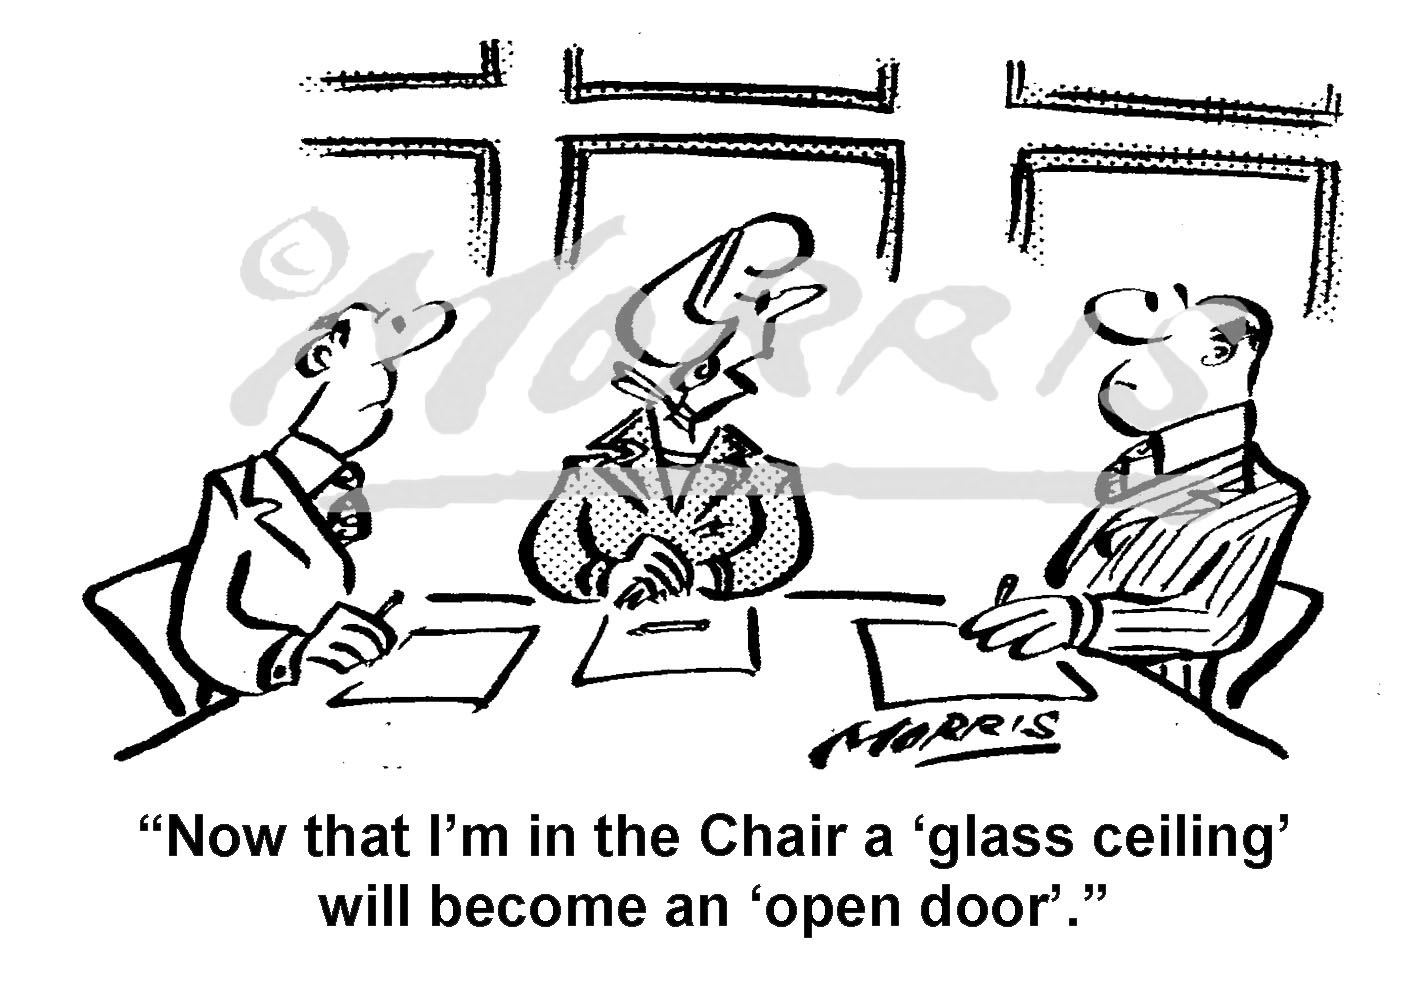 Glass ceiling cartoon, boardroom cartoon – Ref: 8464bw